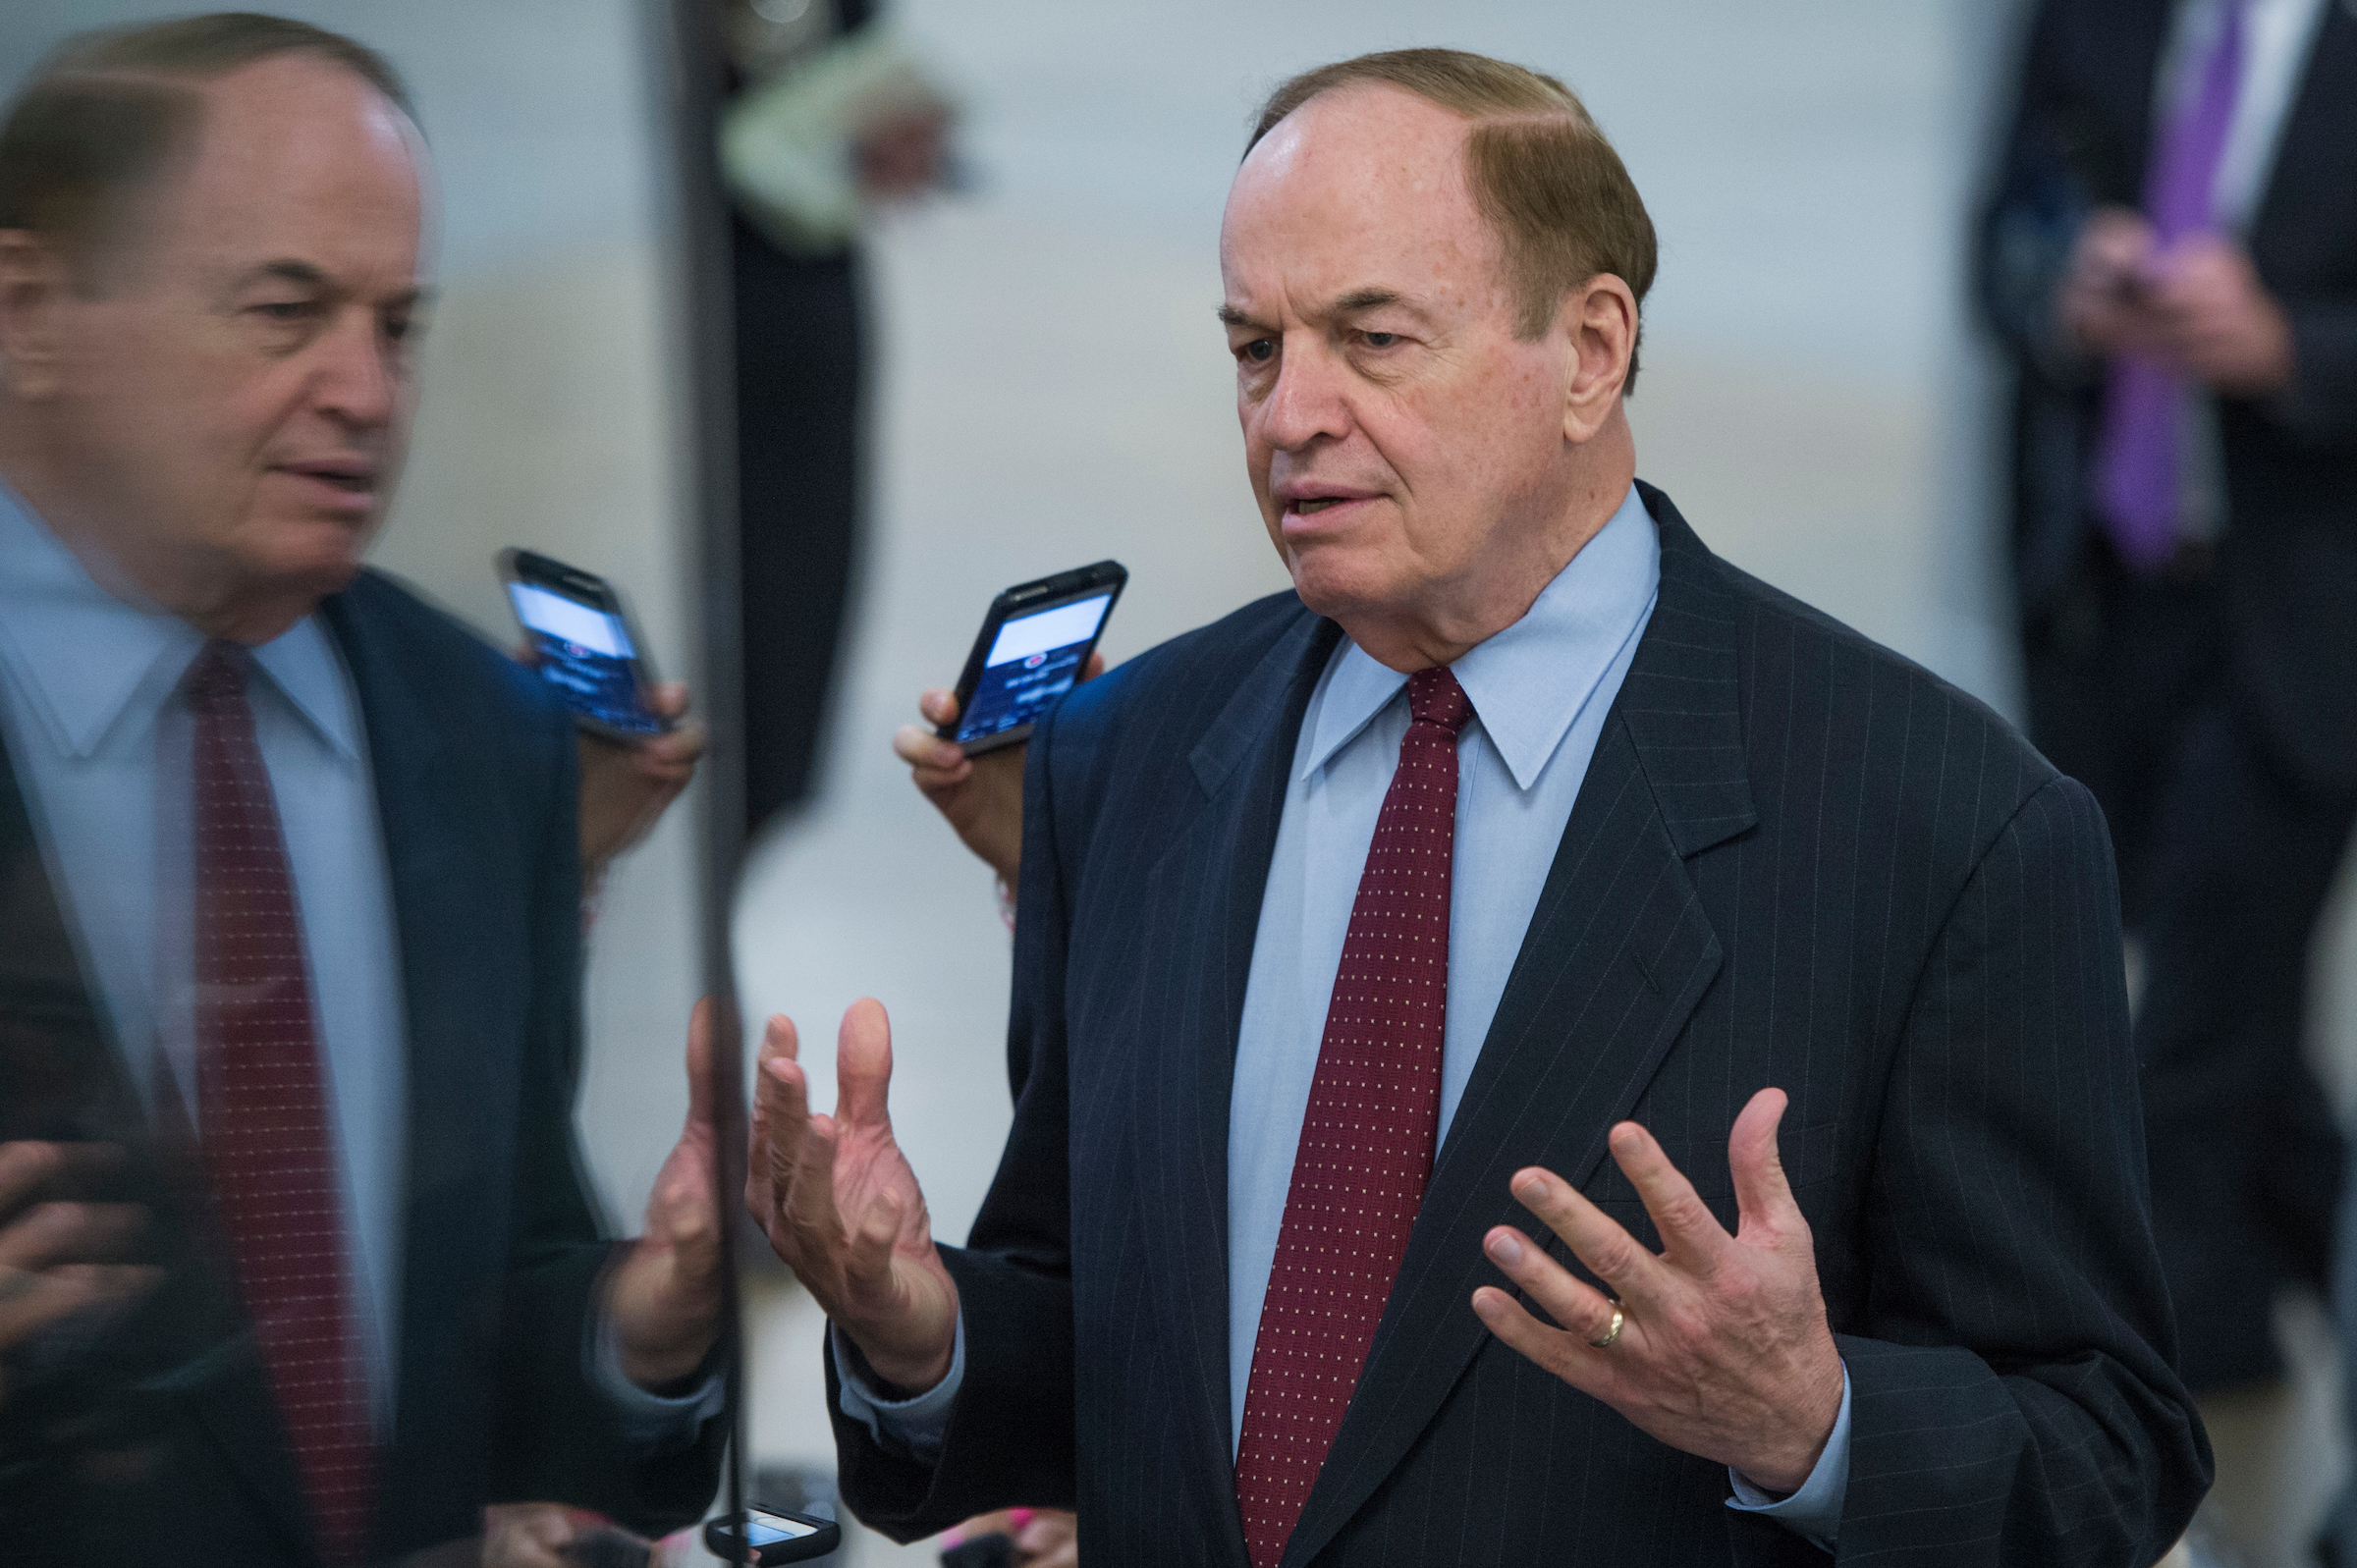 UNITED STATES - DECEMBER 06: Sen. Richard Shelby, R-Ala., is seen in the senate subway before a vote in the Capitol on December 6, 2017. (Photo By Tom Williams/CQ Roll Call)